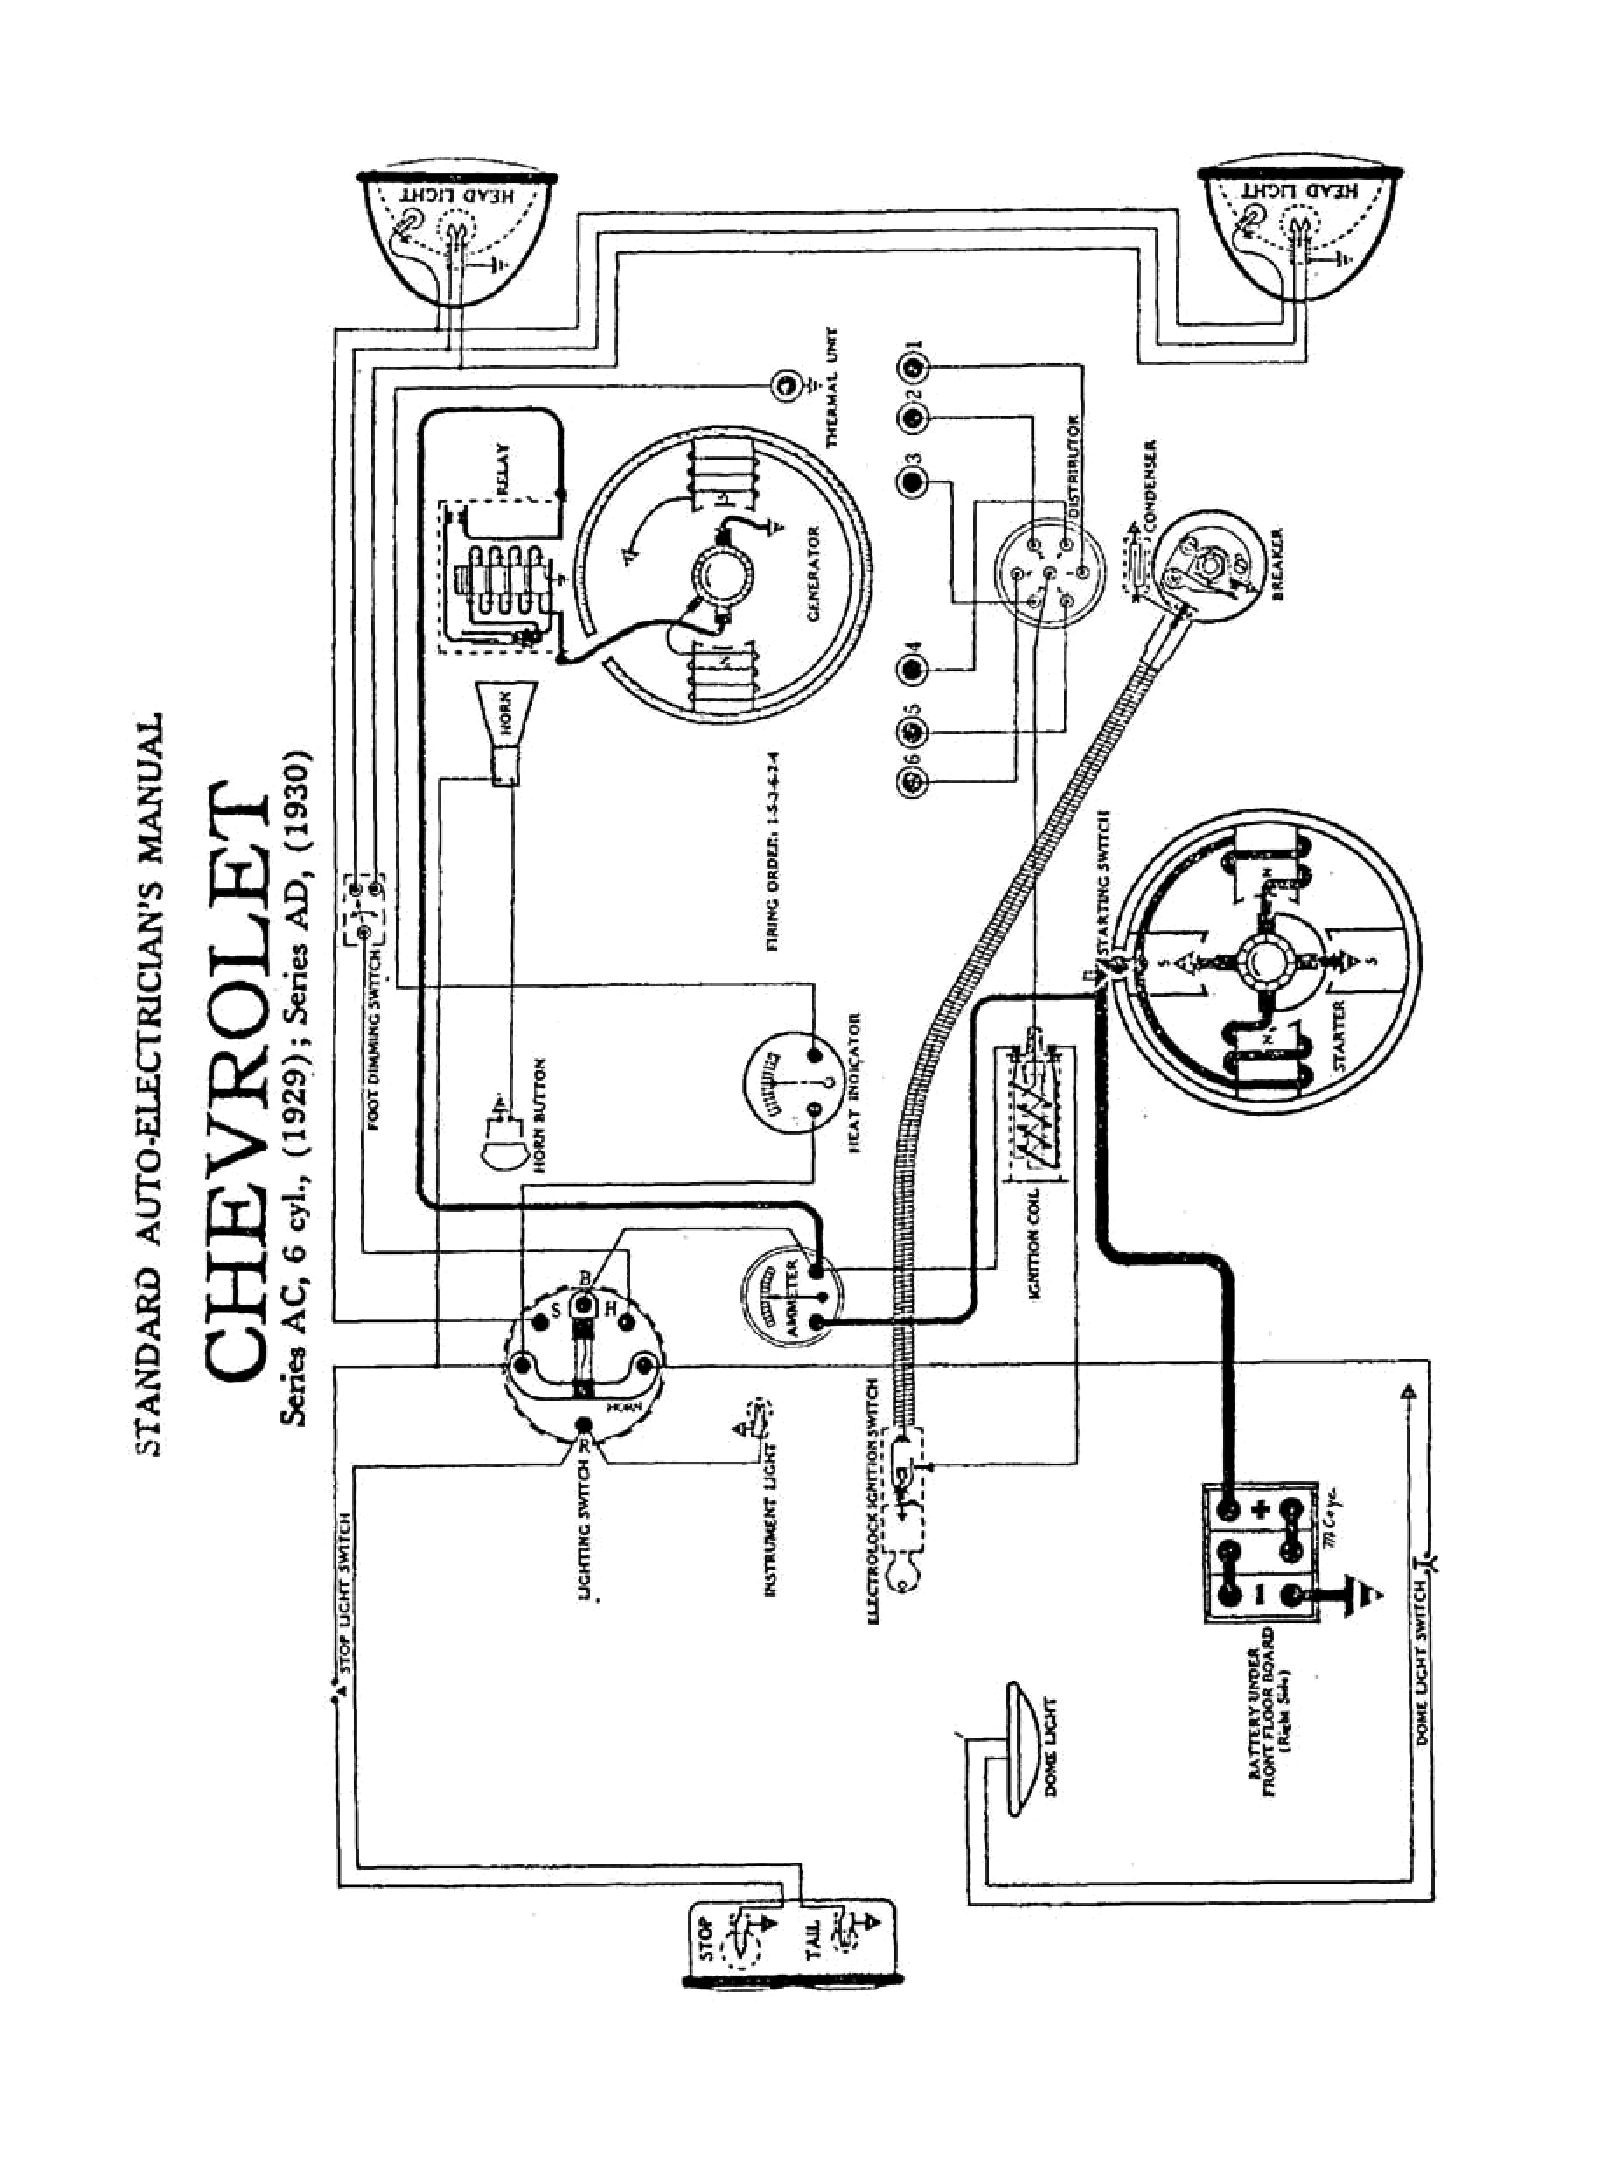 ford flathead firing order diagram traxxas revo 2 5 parts v8 engine wiring library